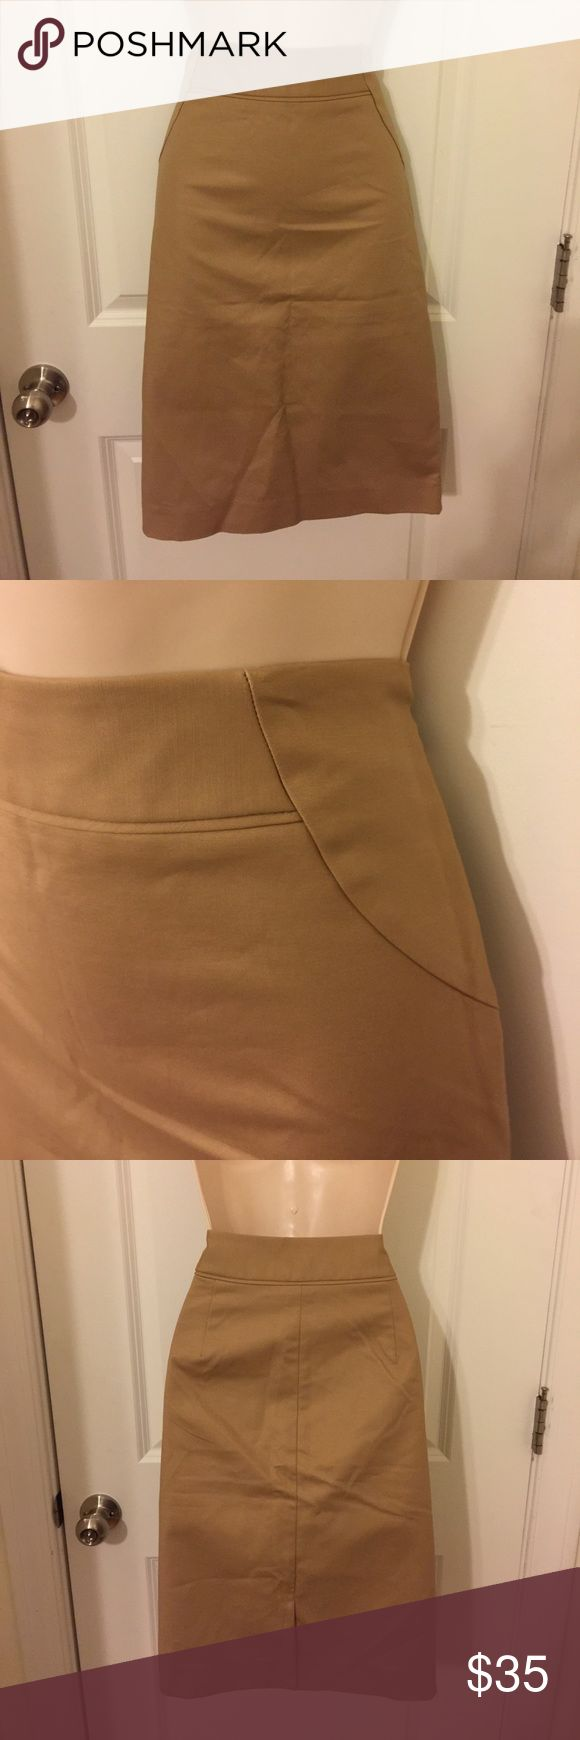 "NWT tan Pencil/straight skirt THE LIMITED sz 8T NEW WITH TAGS!! Tan colored pencil skirt from THE LIMITED  Size 8T TALL Waist: 31"" Hips: 38"" Length (waist to hem): 23"" With side hook and zip fastening. 2"" waistband. Fully lined. 5"" slit at back, still factory stitched shut. Shell: 97% cotton, 3% spandex. Lining: 100% polyester. In perfect ""New With Tags"" condition... From a smoke free home. The Limited Skirts Pencil"